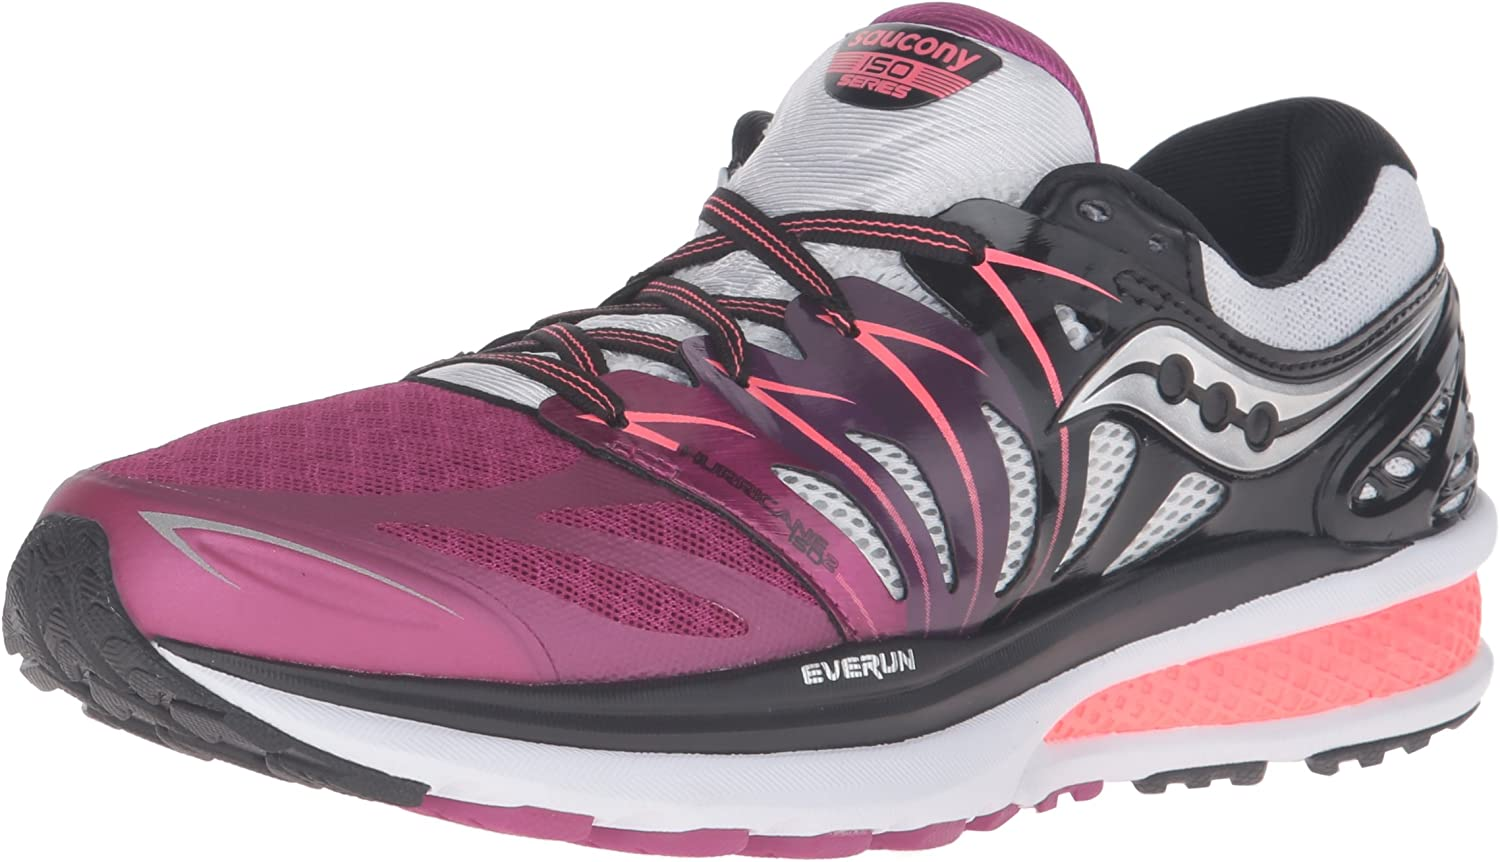 Saucony Women's Hurricane ISO 2 Road Running shoes